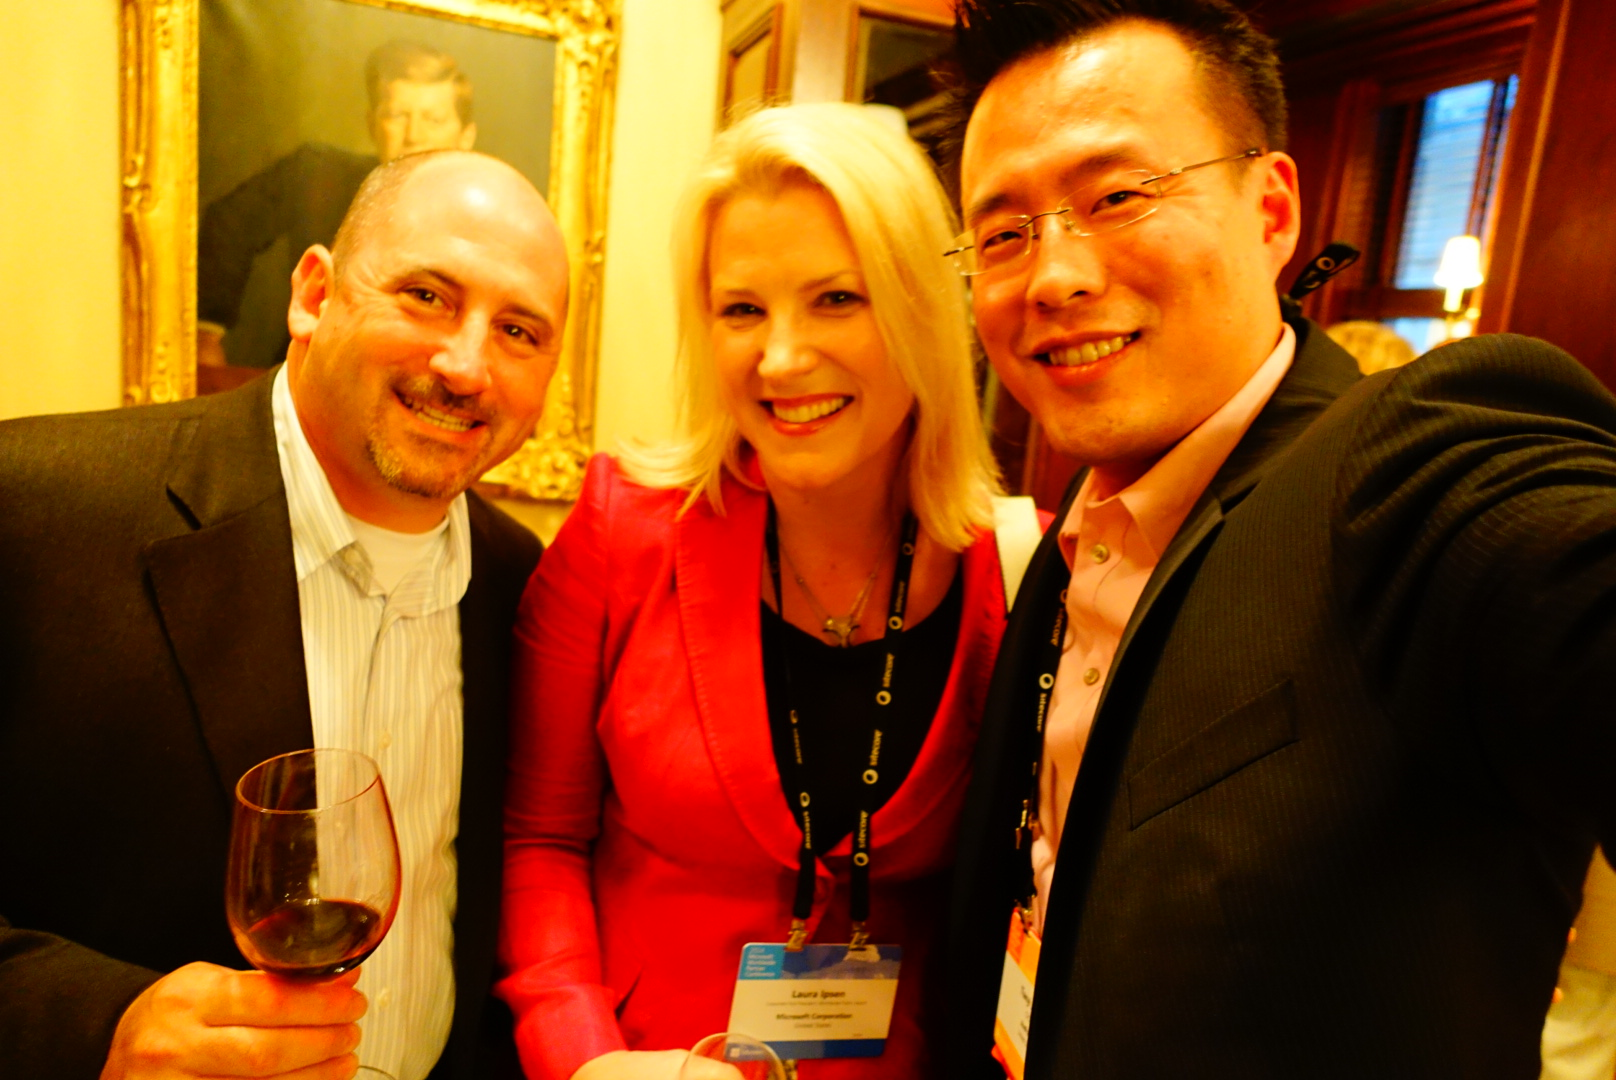 TJ at the Microsoft CityNext partner event with Microsoft General Manager of Worldwide Government Joel Cherkis and Microsoft Corporate Vice President of Worldwide Public Sector Laura Ipsen.